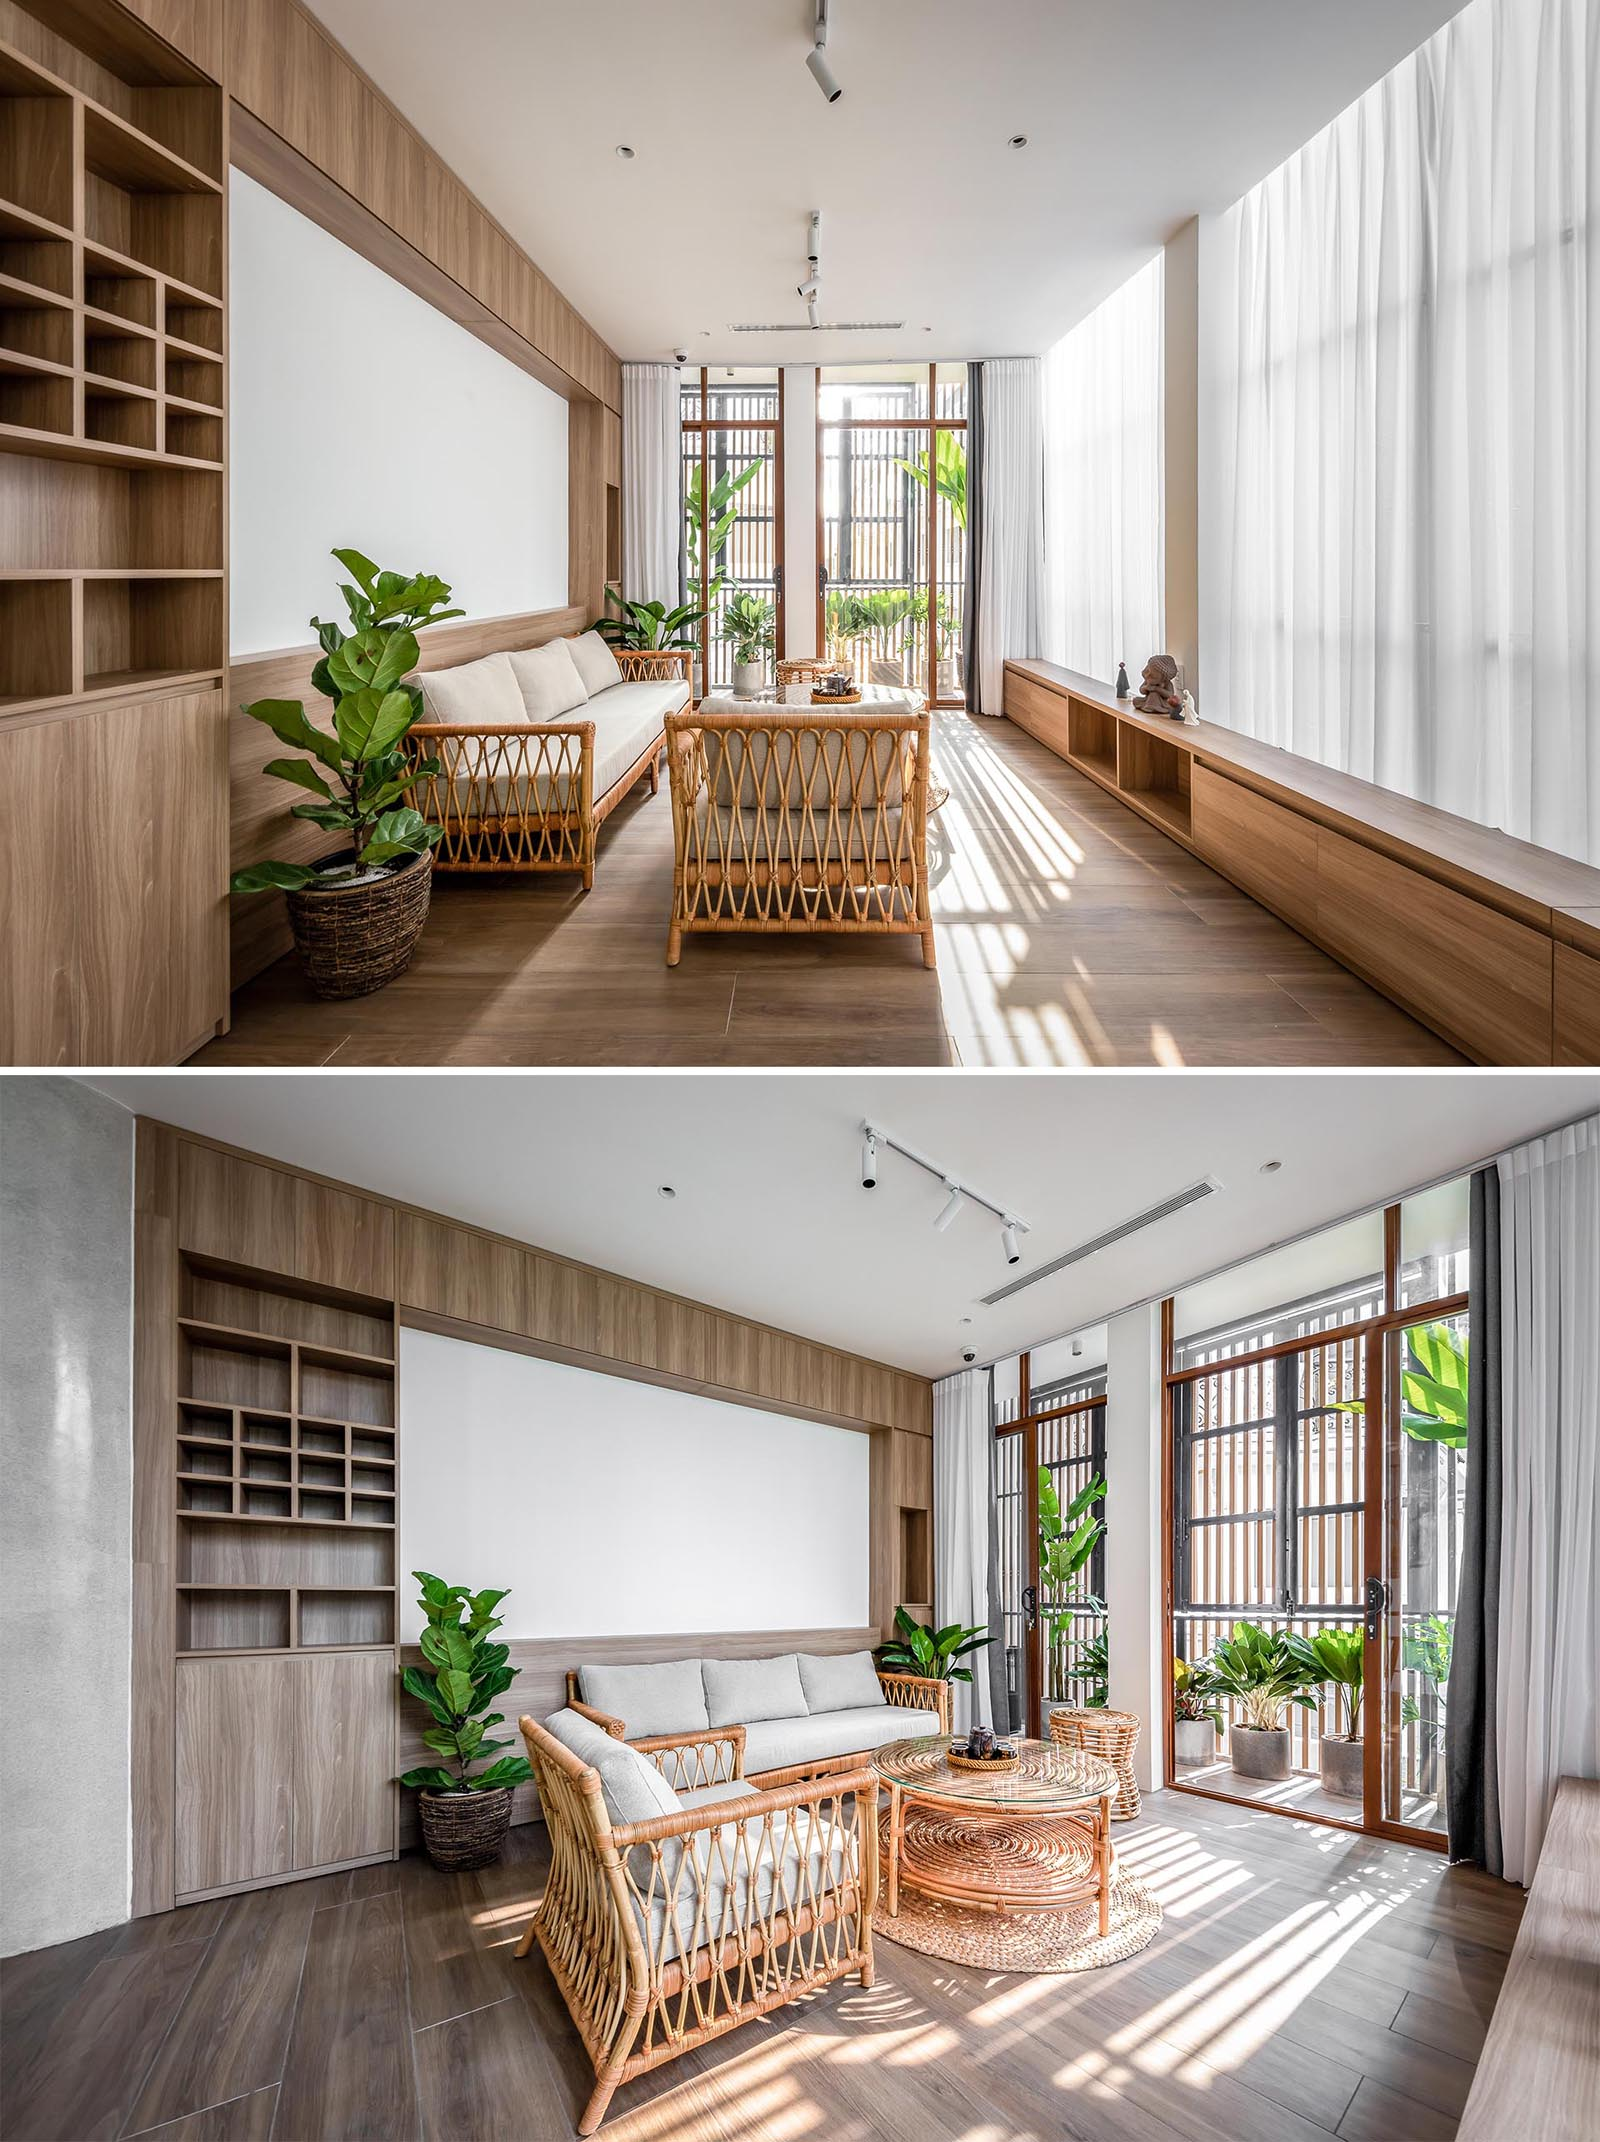 This contemporary living room is casual with wood shelving and furniture, a few plants, and floor-to-ceiling curtains.